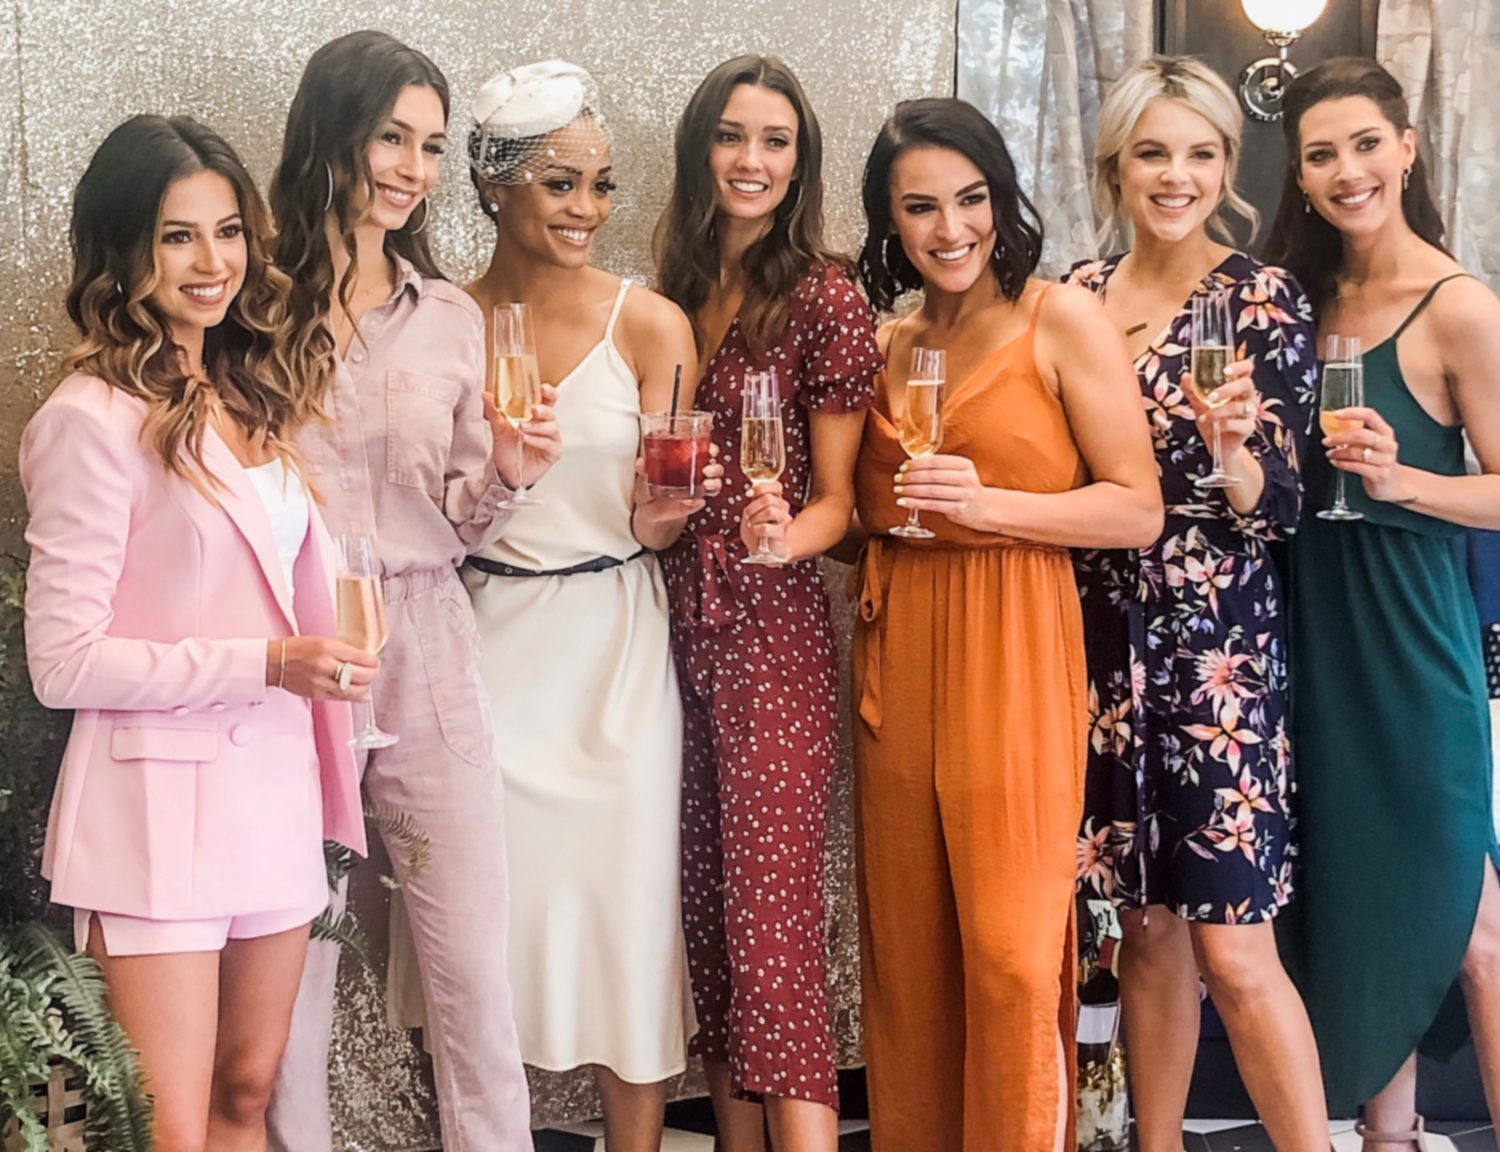 Exclusive: See Photos from Bachelorette Rachel Lindsay's Bridal Shower